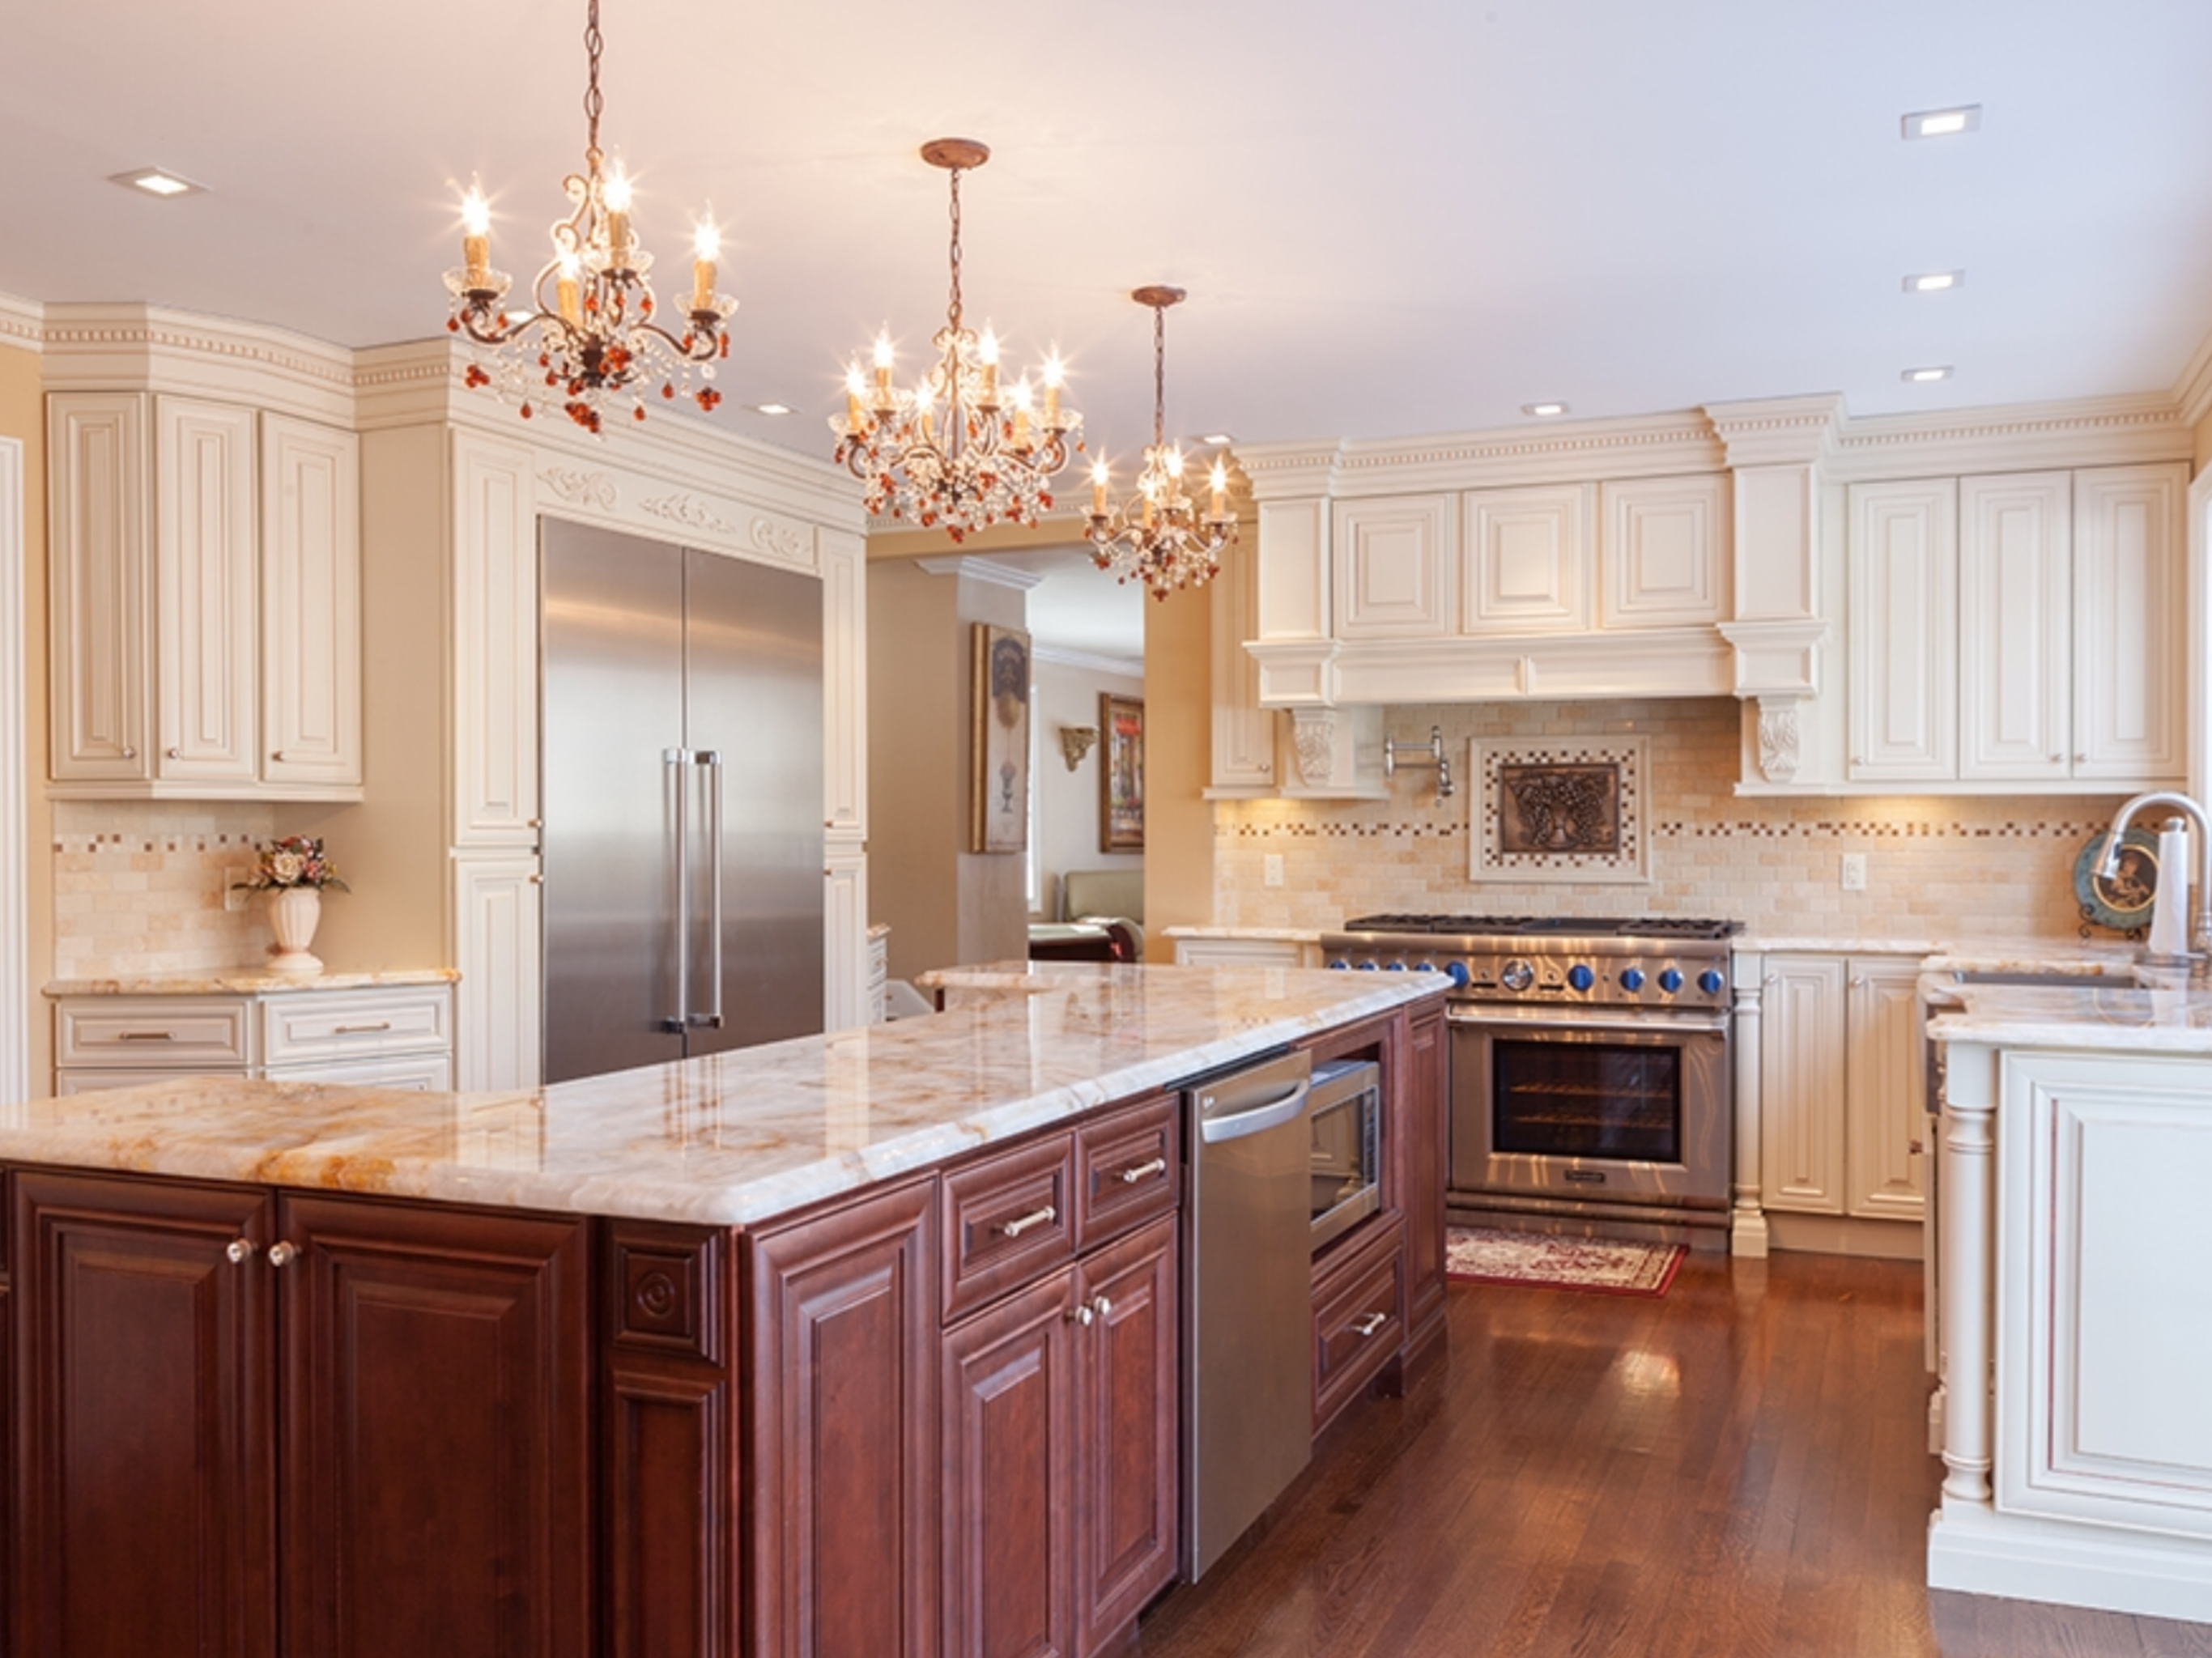 Pin By Abc Kitchens On Creme Maple Glazed Cabinets Used Kitchen Cabinets Kitchen Cabinets Wholesale Kitchen Cabinets